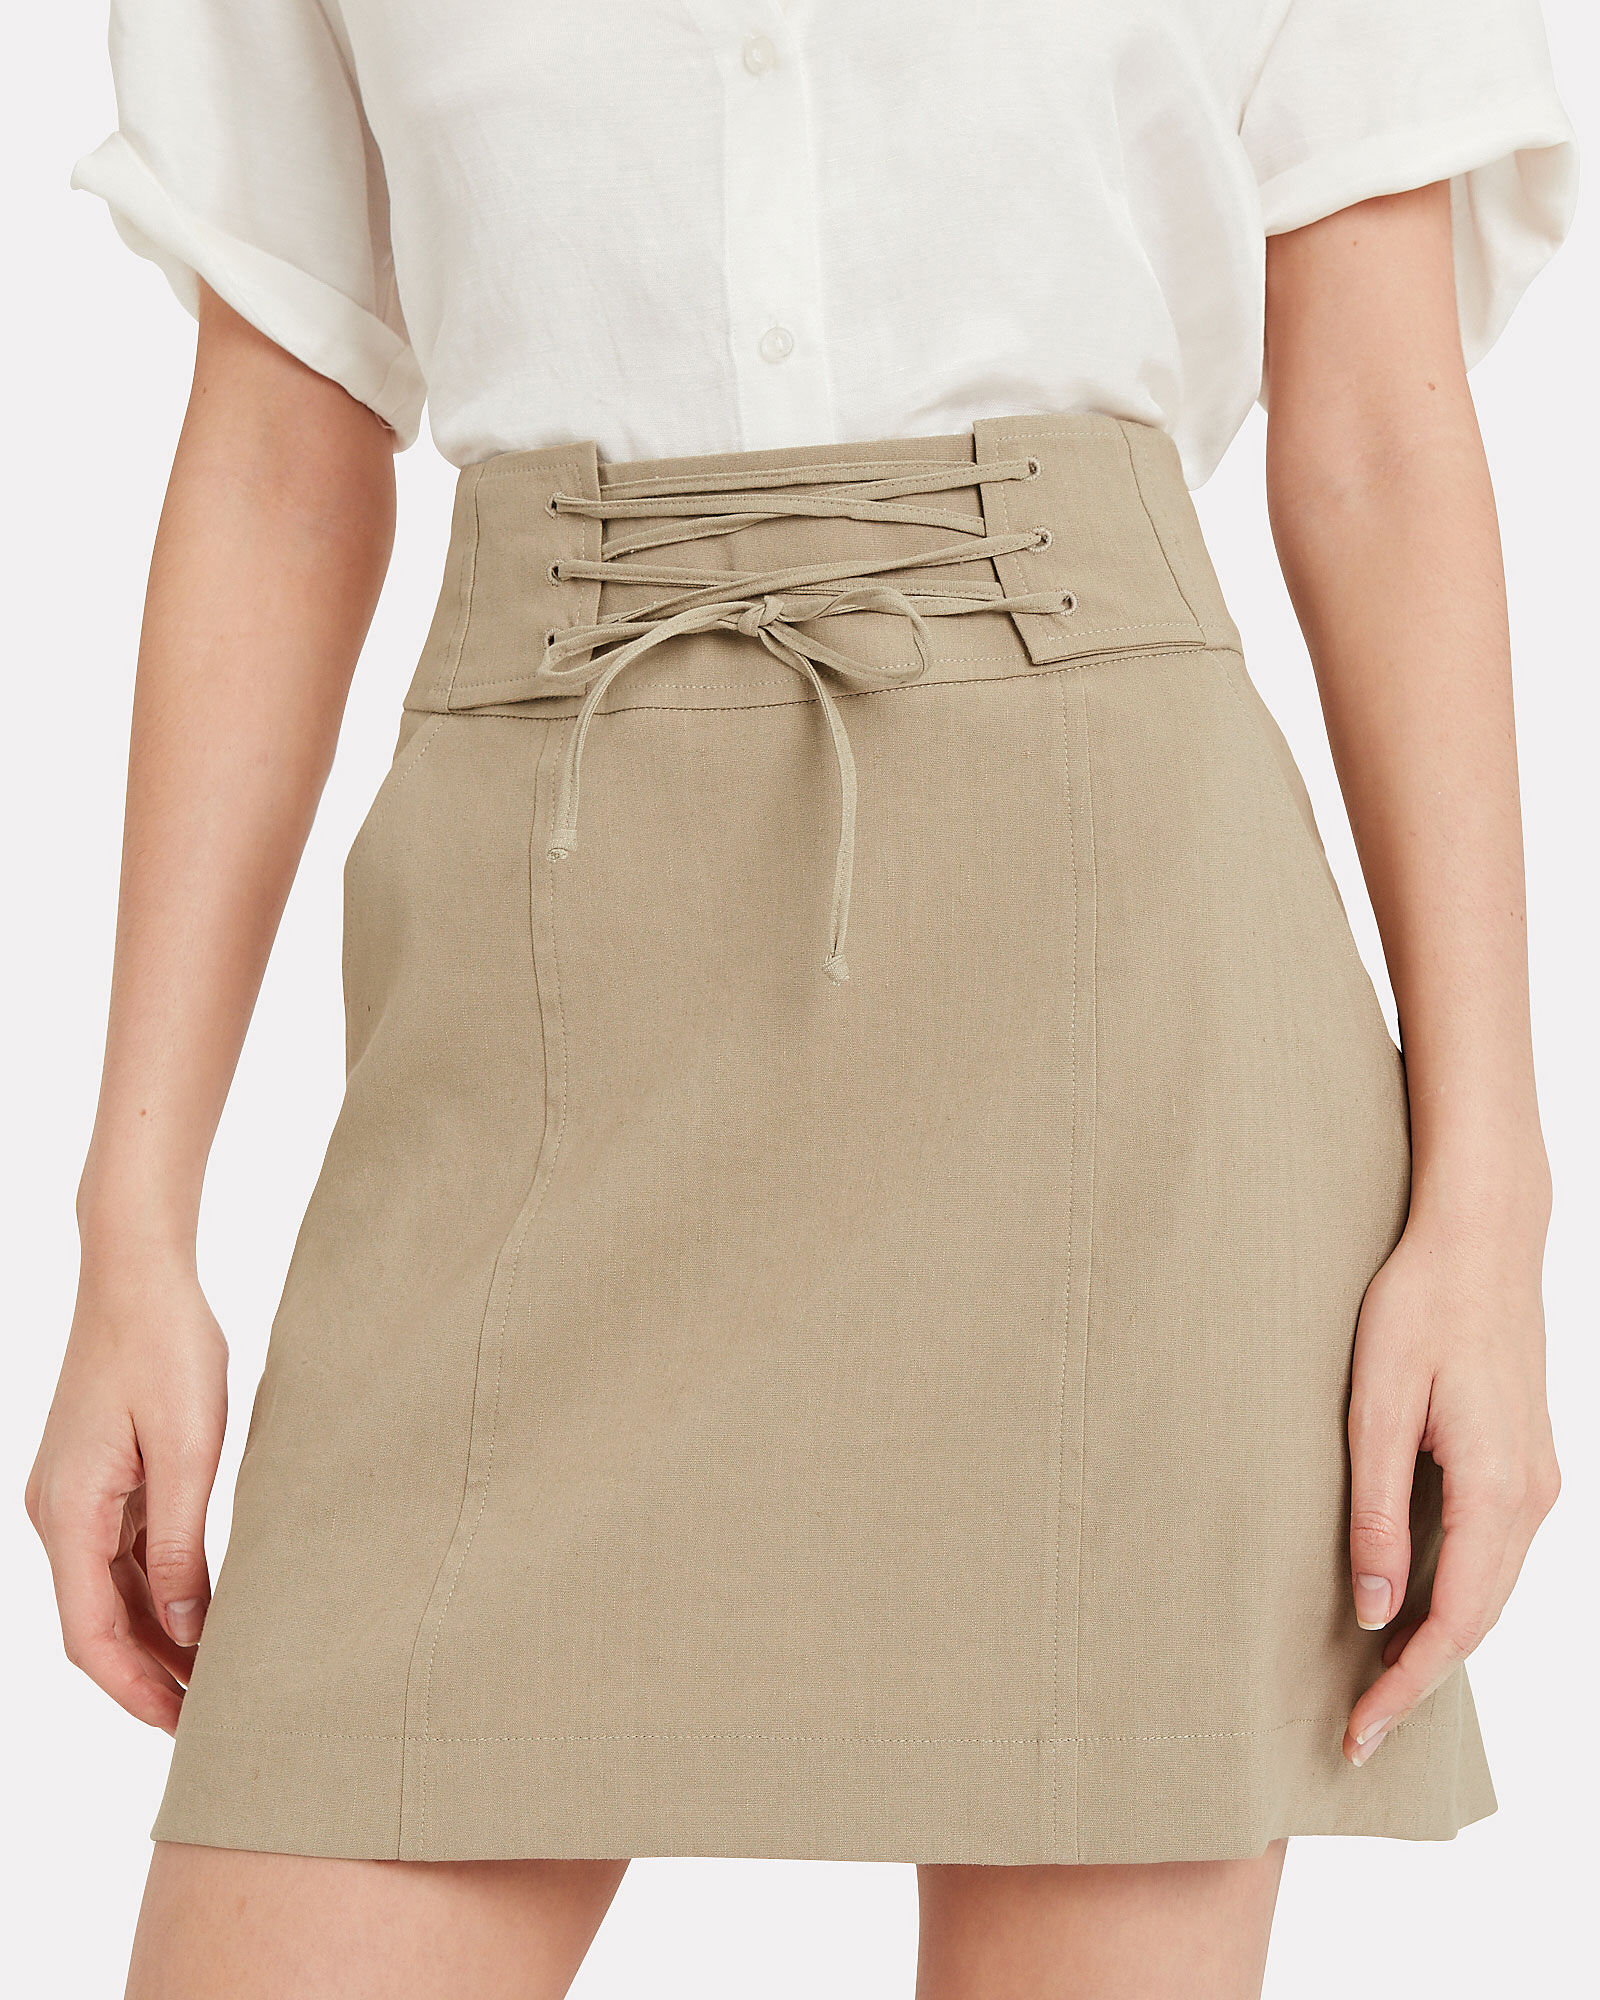 Alice Lace Up Mini Skirt, BEIGE, hi-res